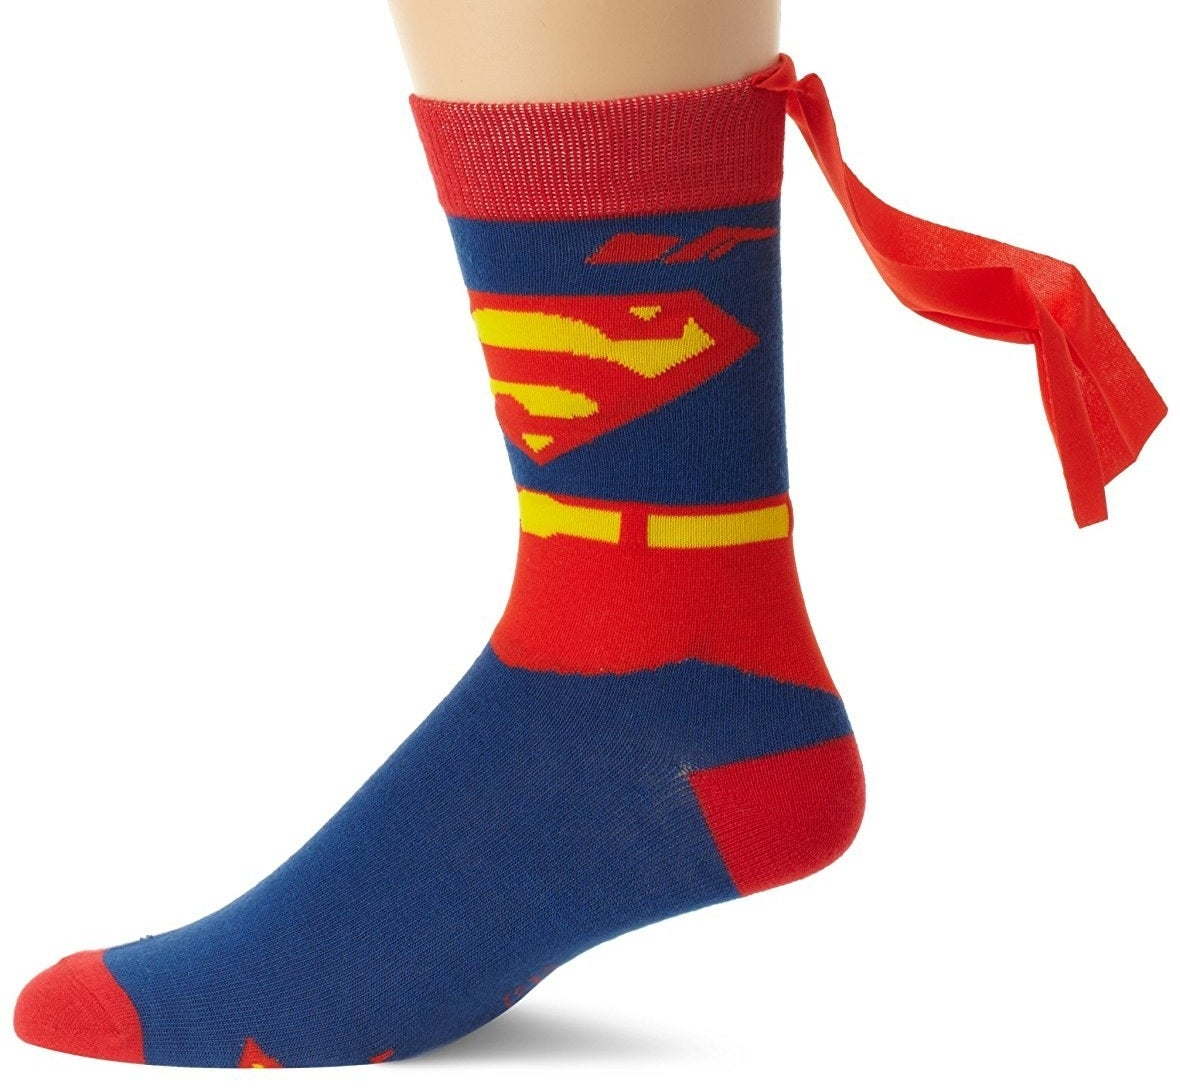 foot in superman sock with mini cape on the back